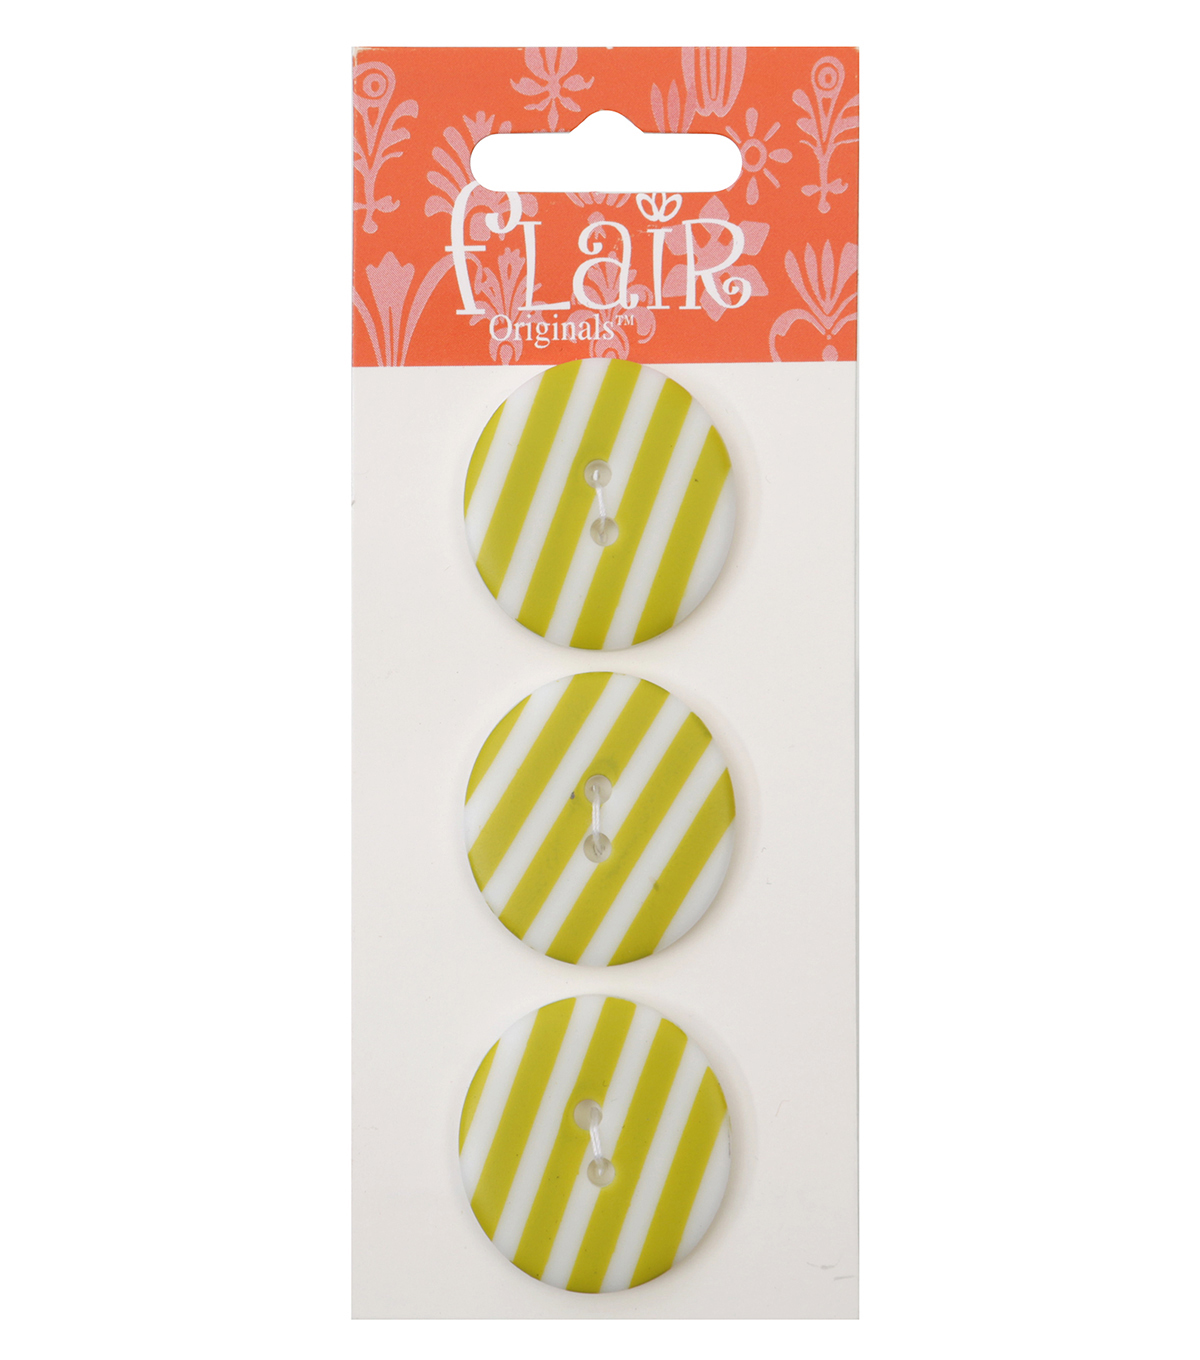 Flair Originals 3 pk 1\u0027\u0027 Buttons-Lime Stripes